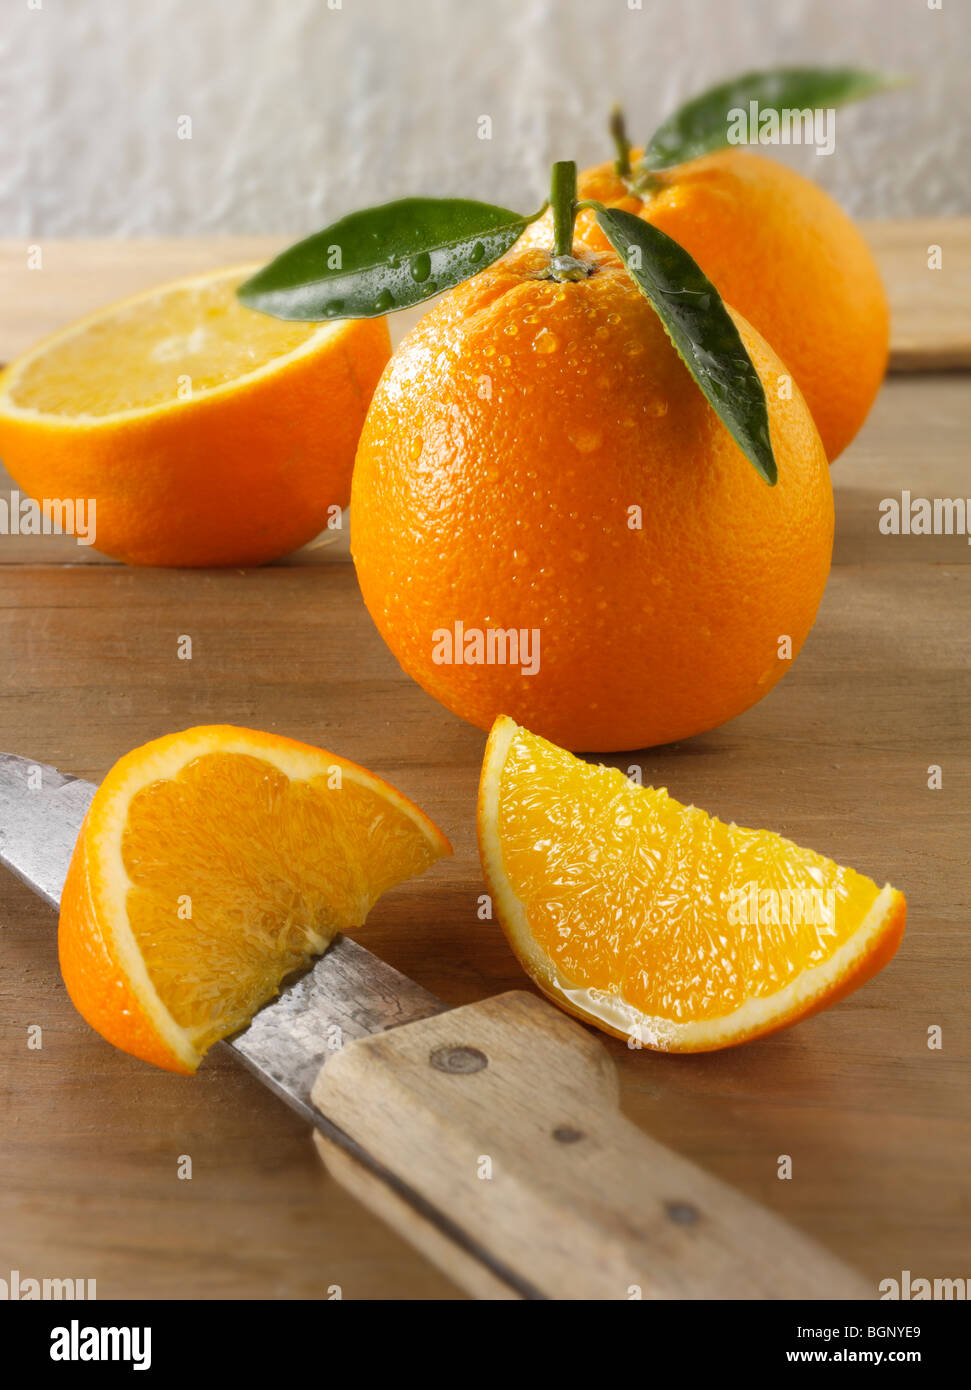 Whole and cut fresh oranges  with leaves in a kitchen - Stock Image